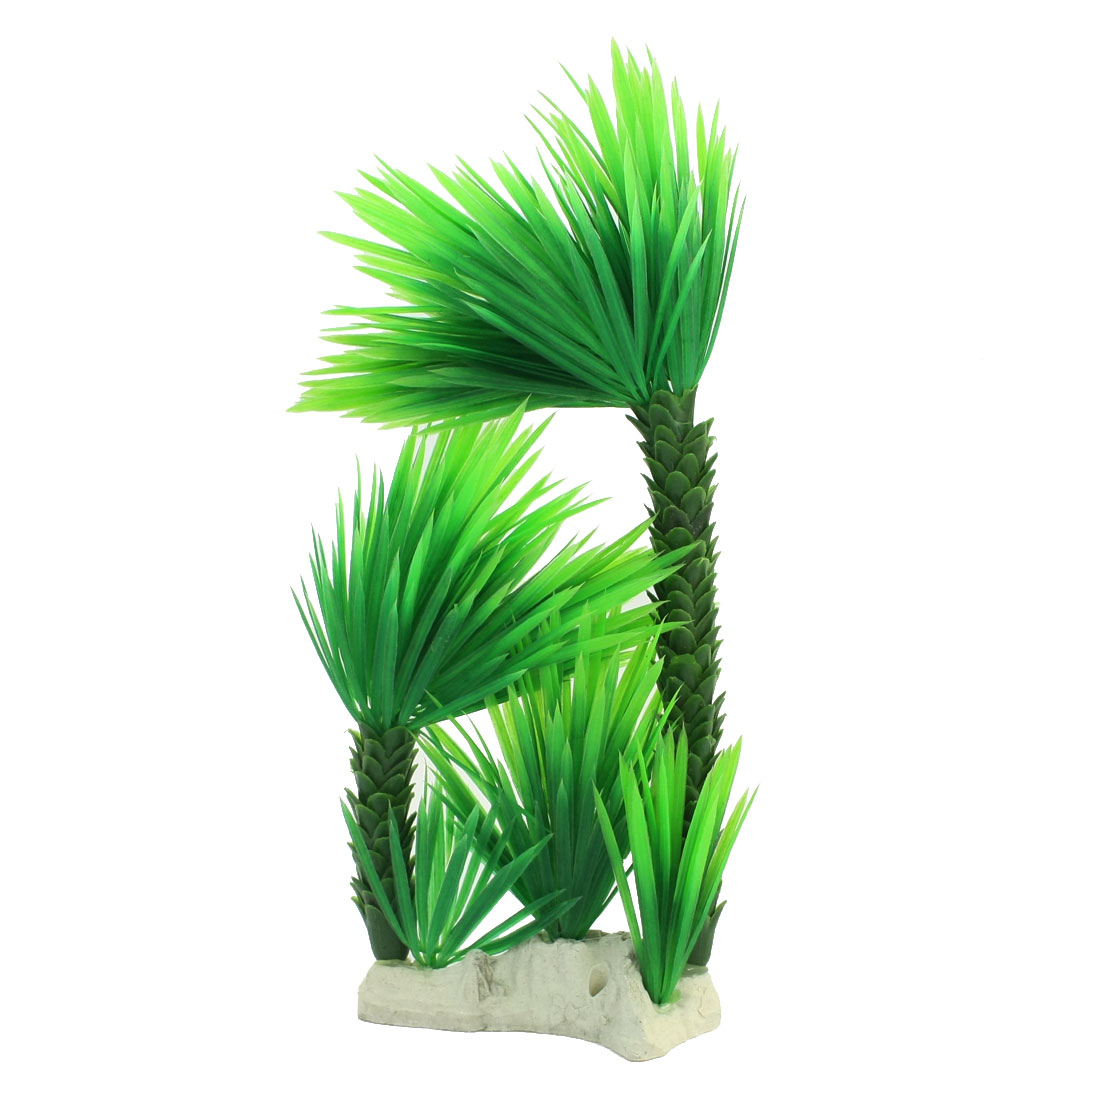 Fish Tank Aquarium Landscaping White Ceramic Base Green Plastic Tree Shaped Water Grass Plant 30cm High